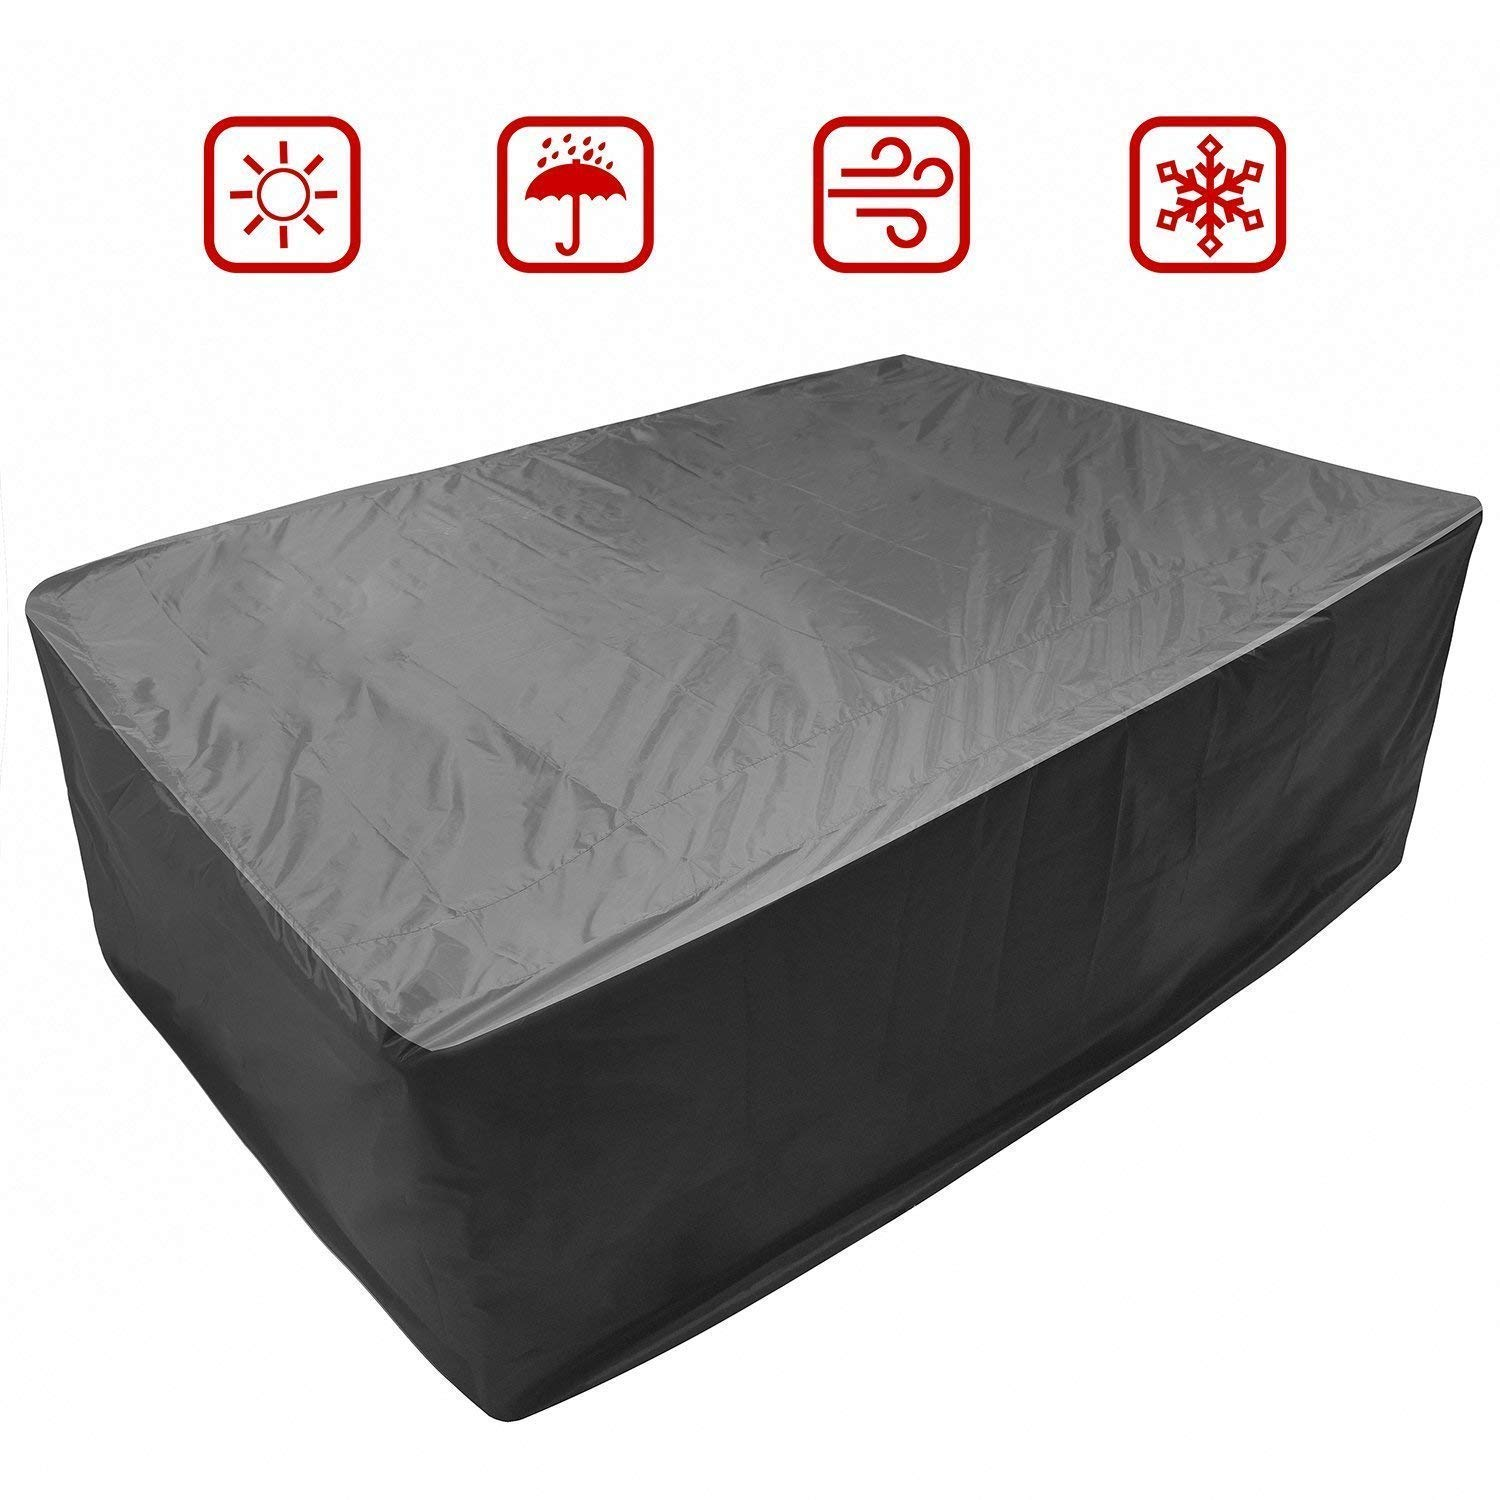 FreeSee Garden Bench Protective Cover Stacking Bench Cover Reclining Patio Outdoor Furniture Covers (L:245 x 165 x 100cm) by FreeSee